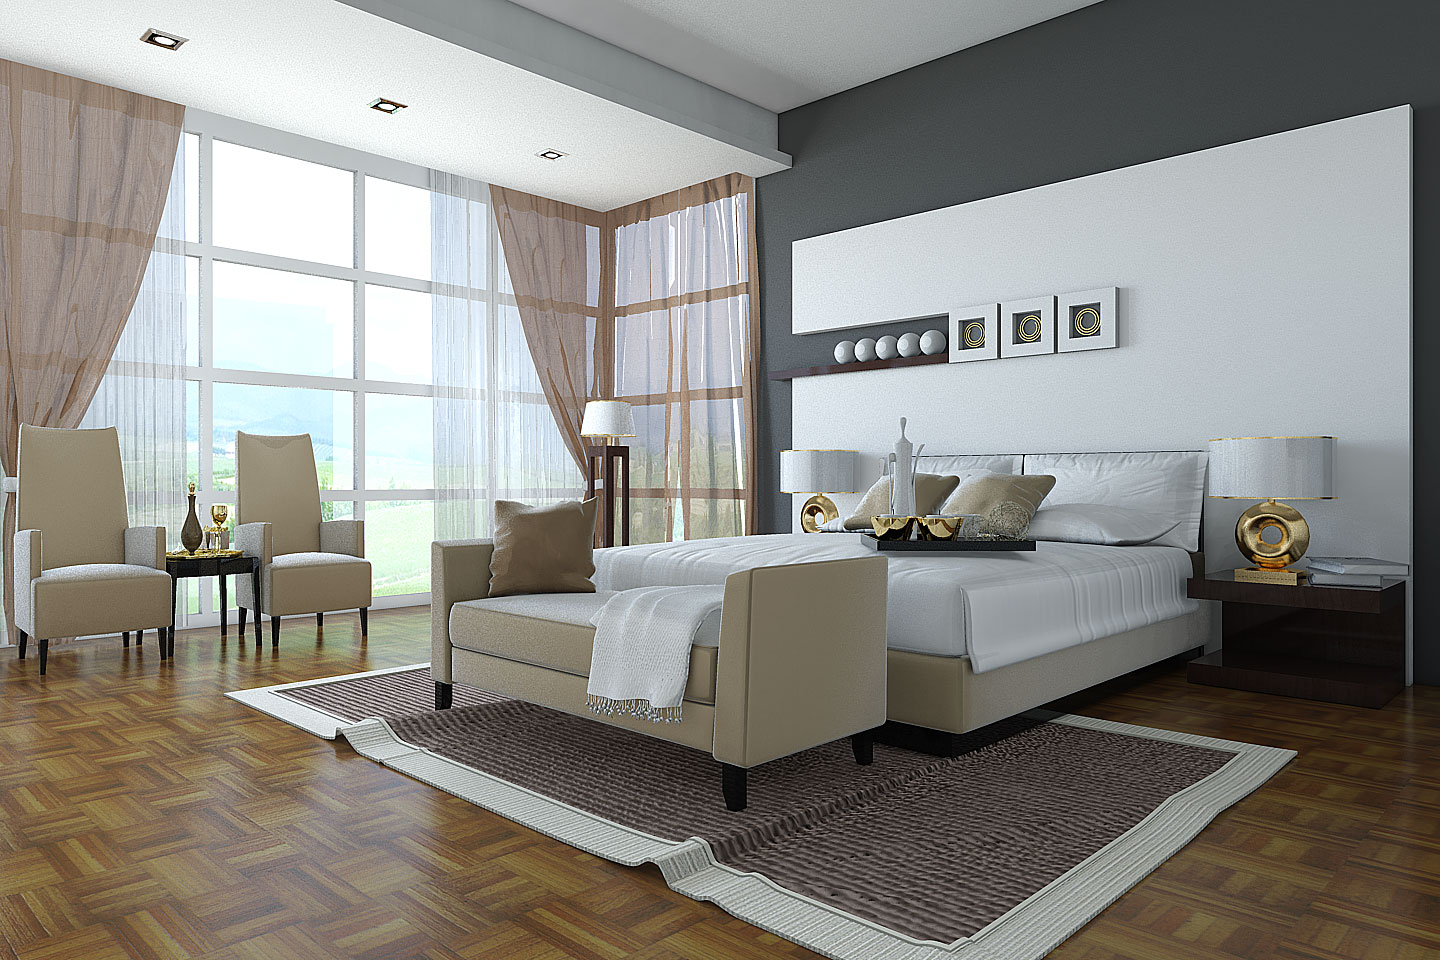 Amazing Classic Bedroom Design 1440 x 960 · 311 kB · jpeg